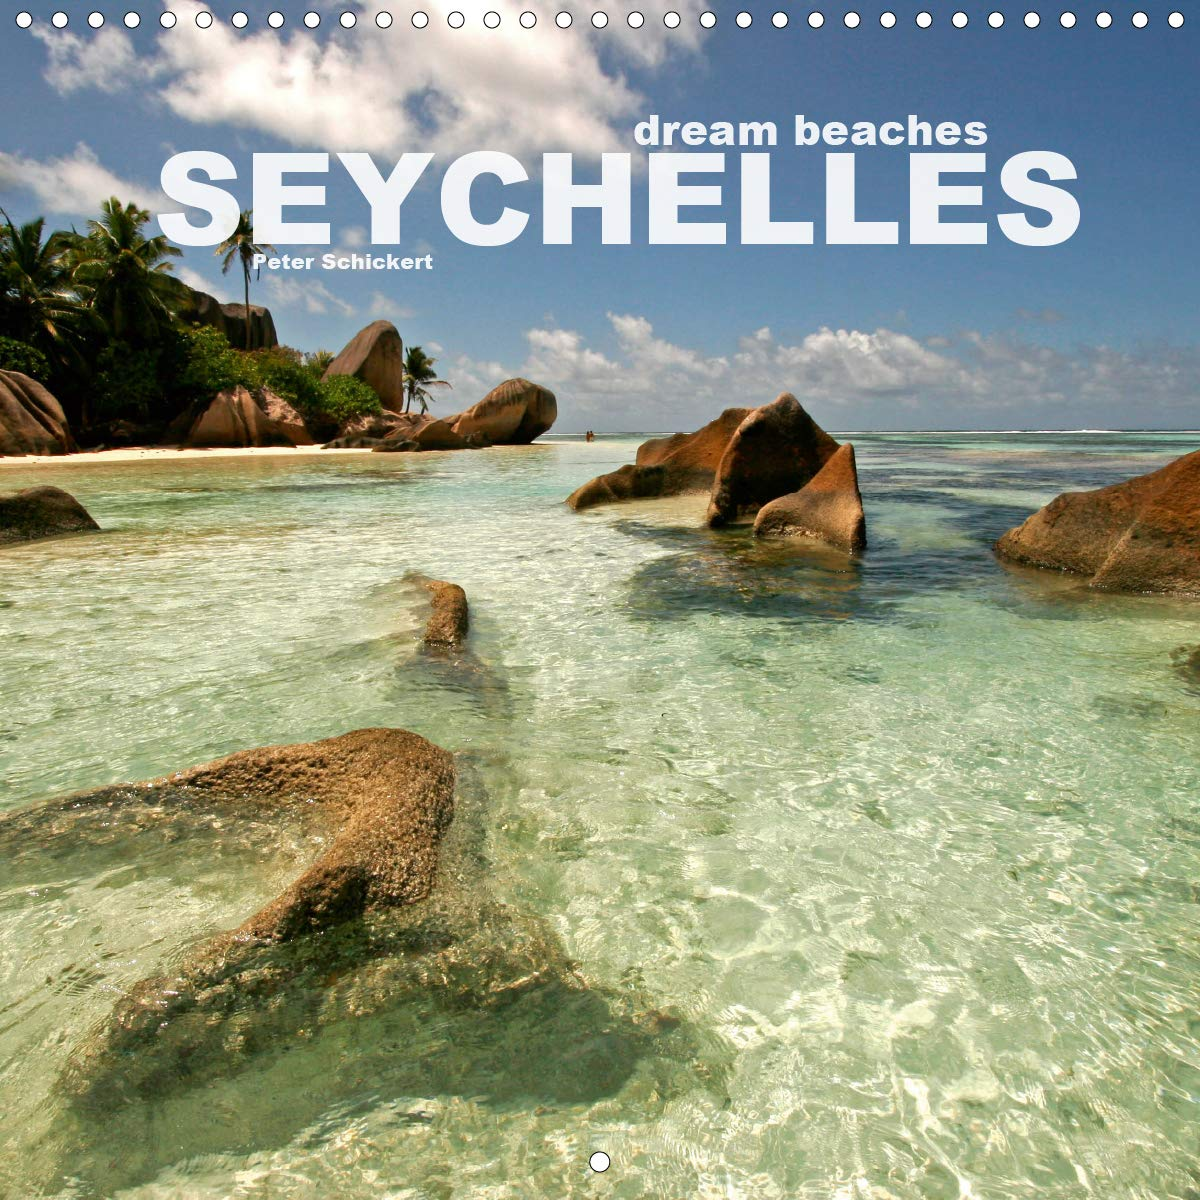 Best Beaches In The World 2020 Buy dream beaches   Seychelles 2020: Simply some of the best